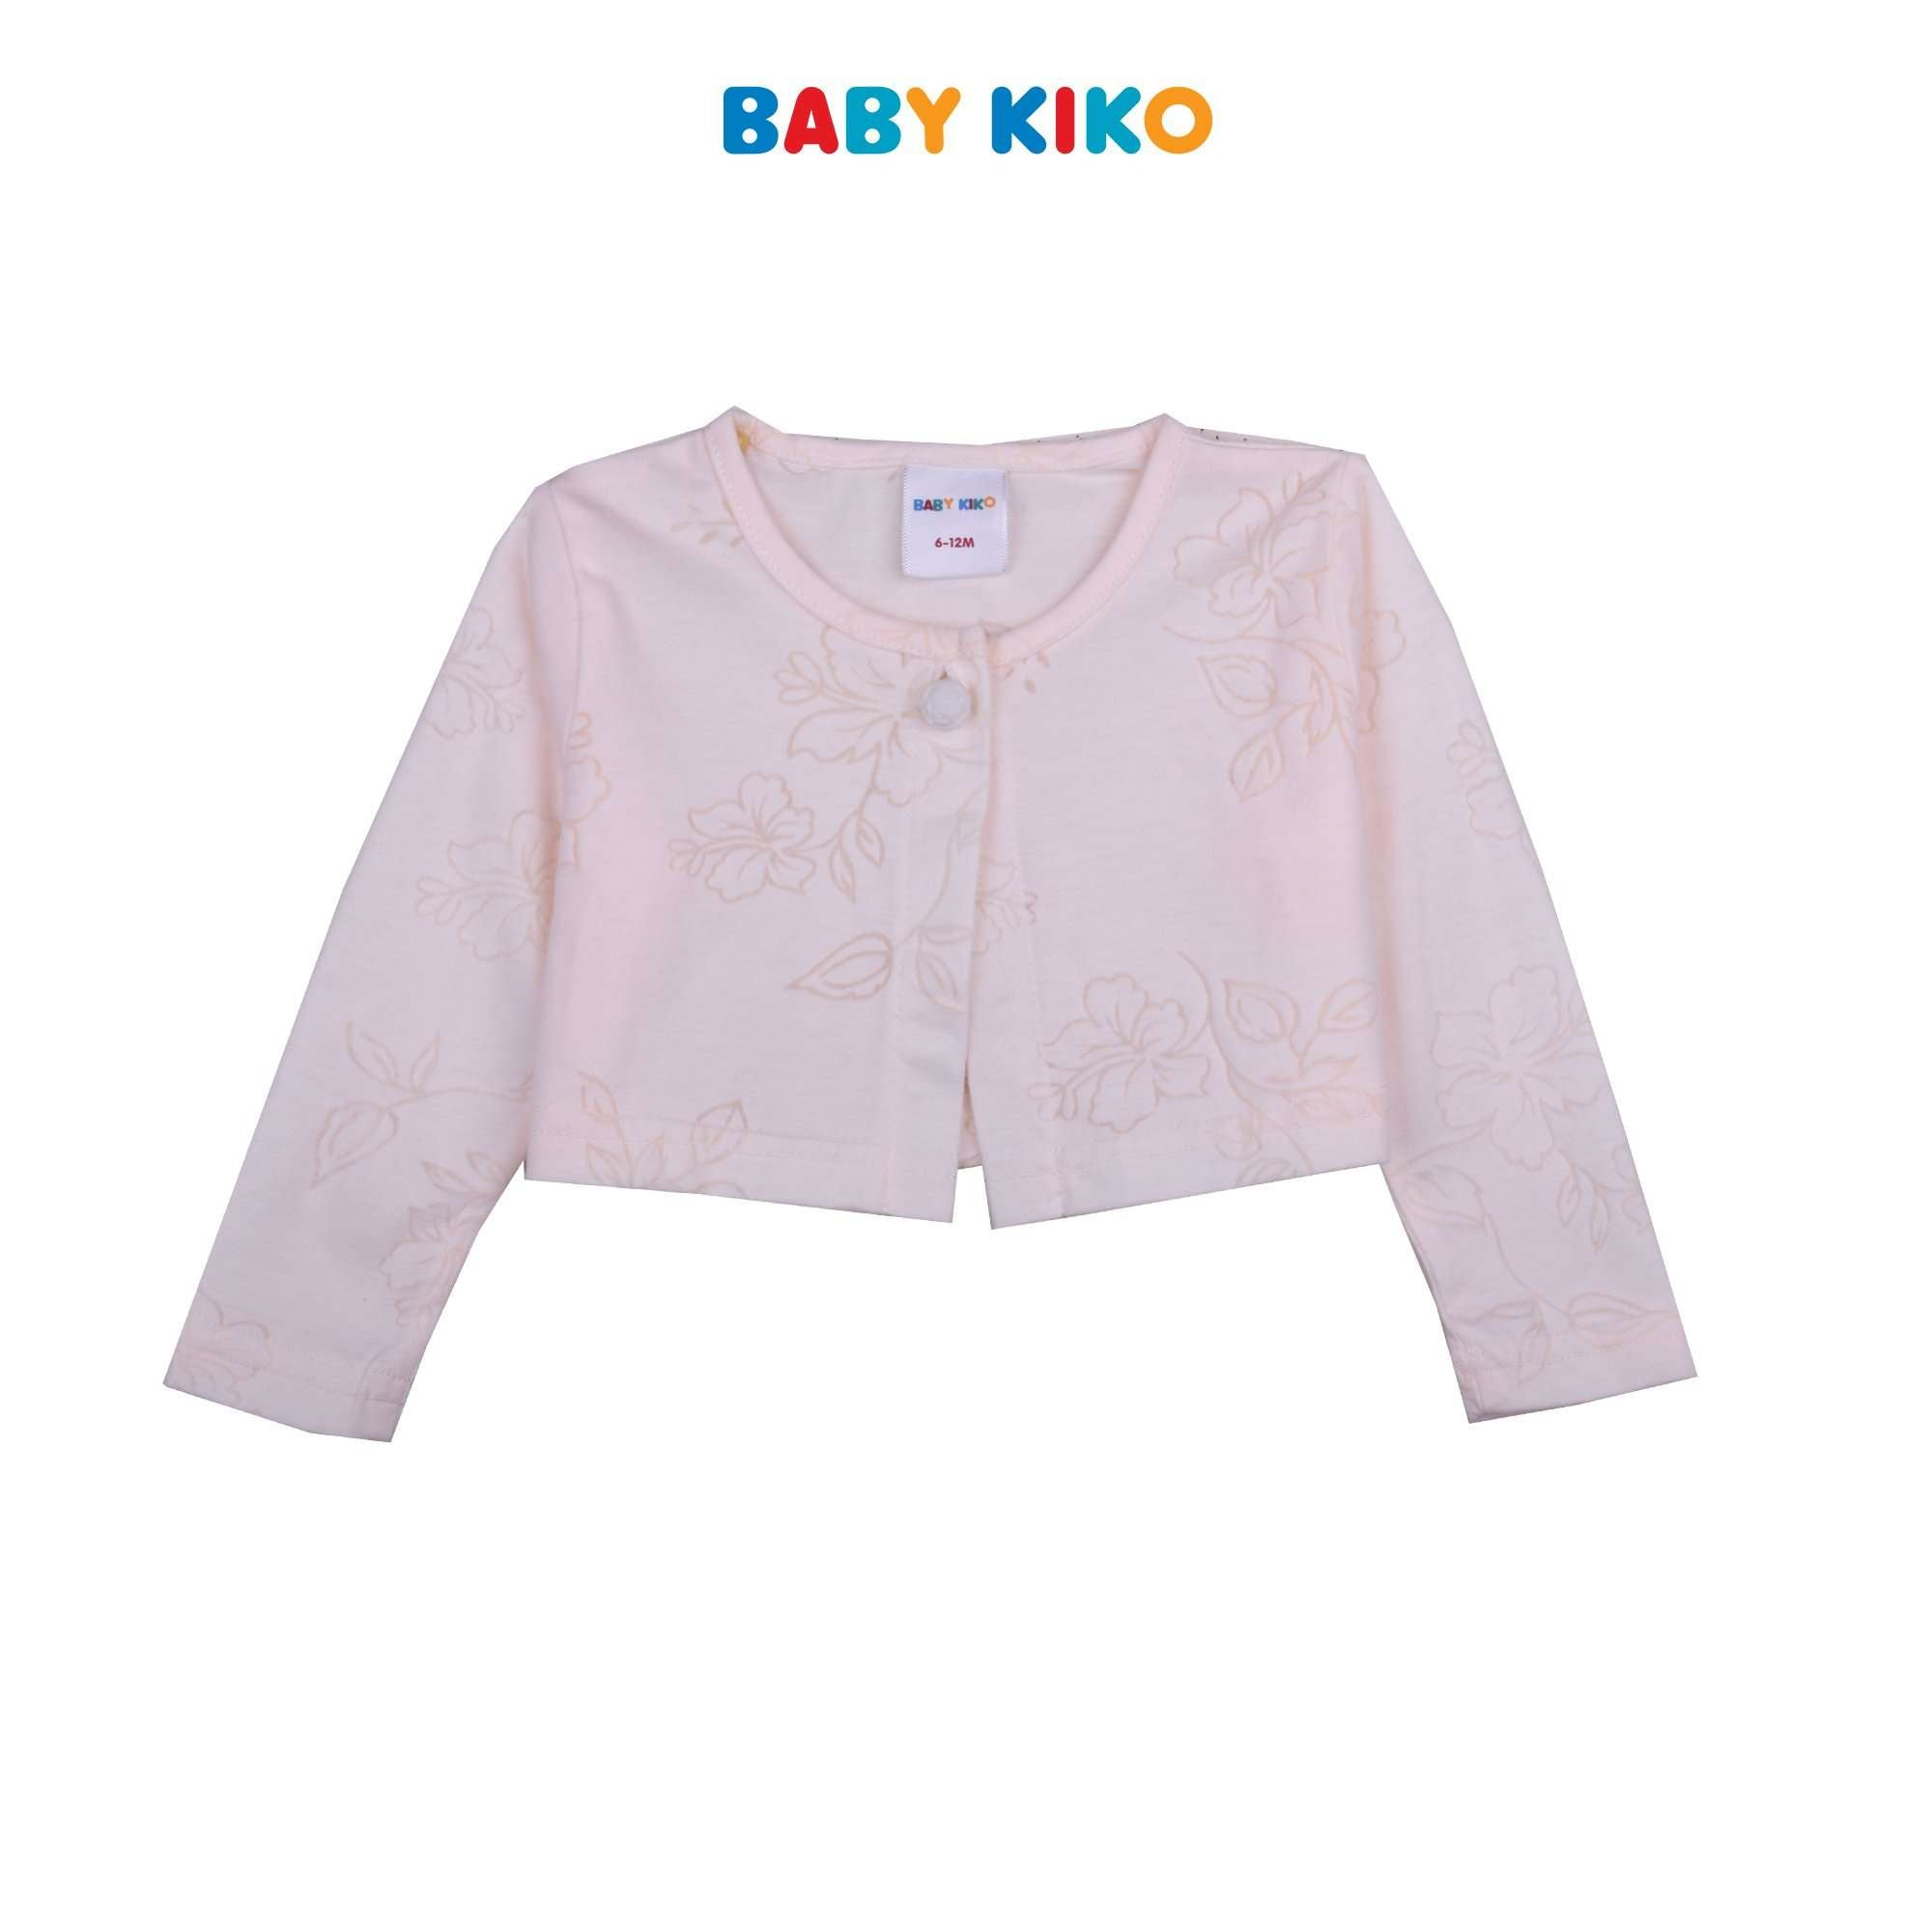 BABY KIKO BABY GIRL BASIC KNIT DRESS - LIGHT PINK B924103-3314-P1 : Buy Baby KIKO online at CMG.MY